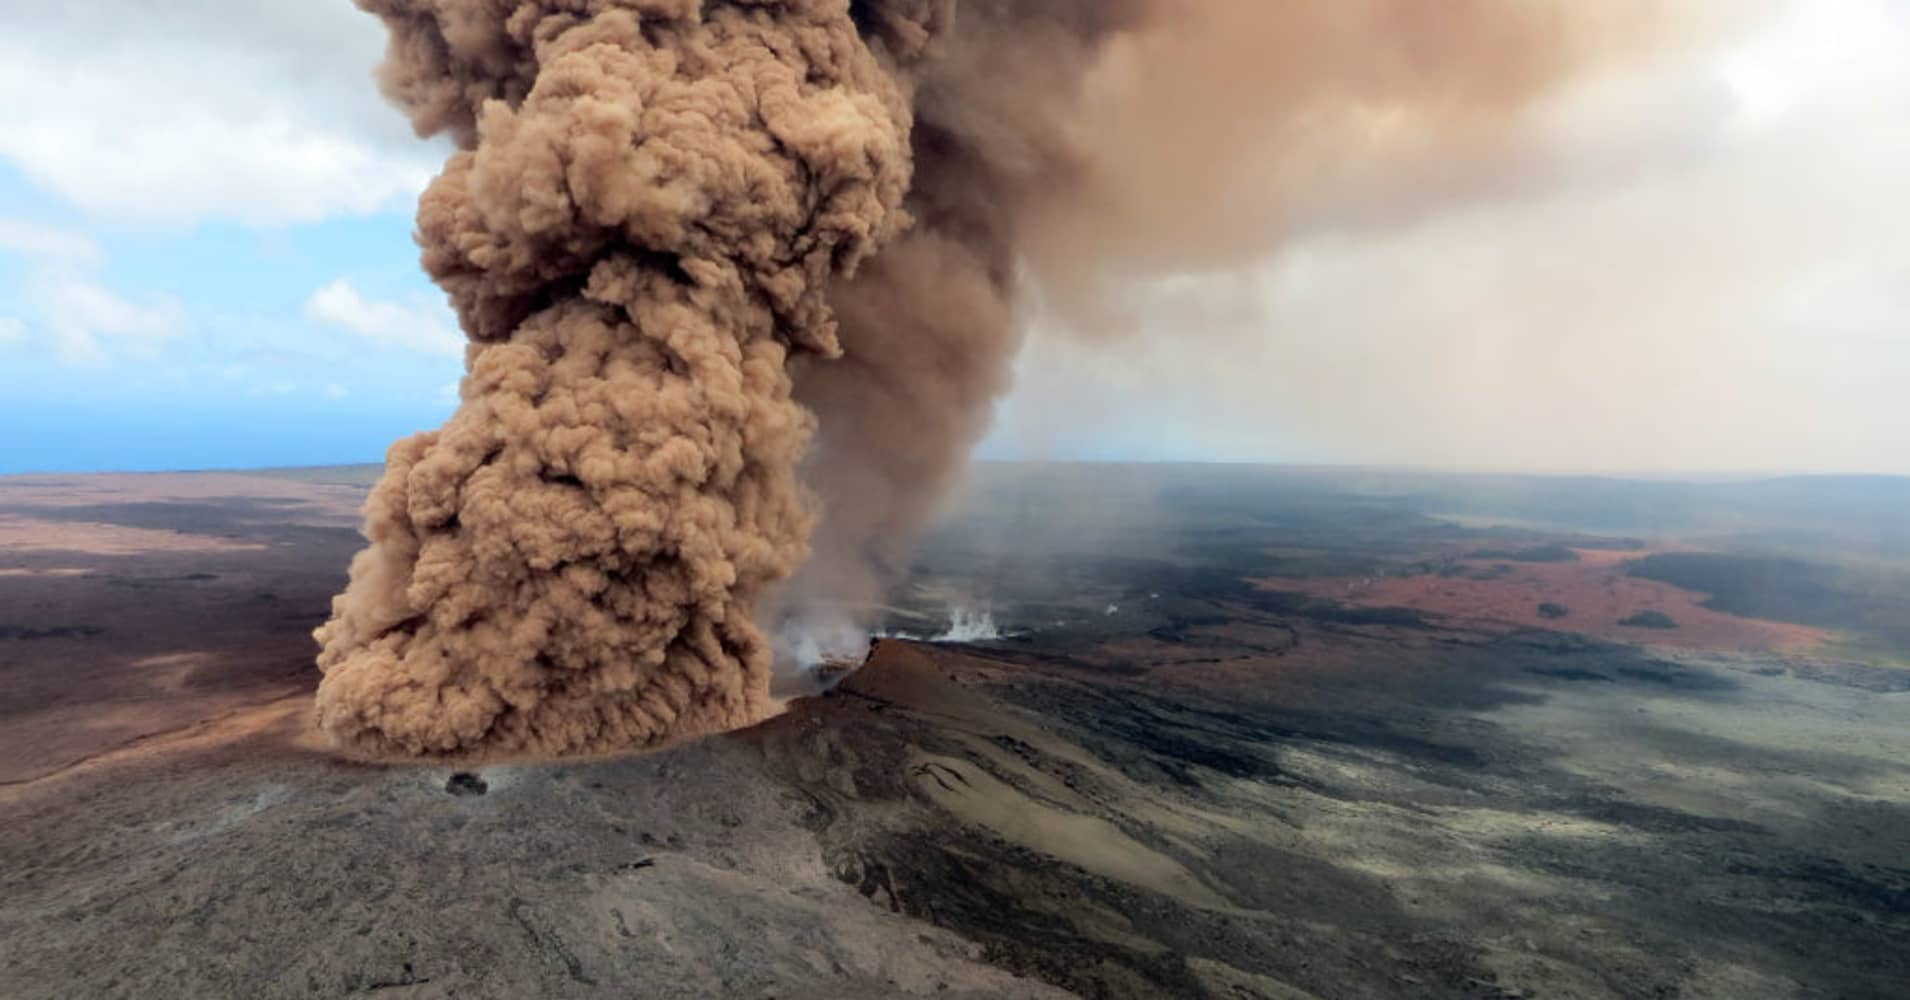 A column of robust, reddish-brown ash plume occurred after a magnitude 6.9 South Flank following the eruption of Hawaii's Kilauea volcano on May 4, 2018 in the Leilani Estates subdivision near Pahoa, Hawaii.